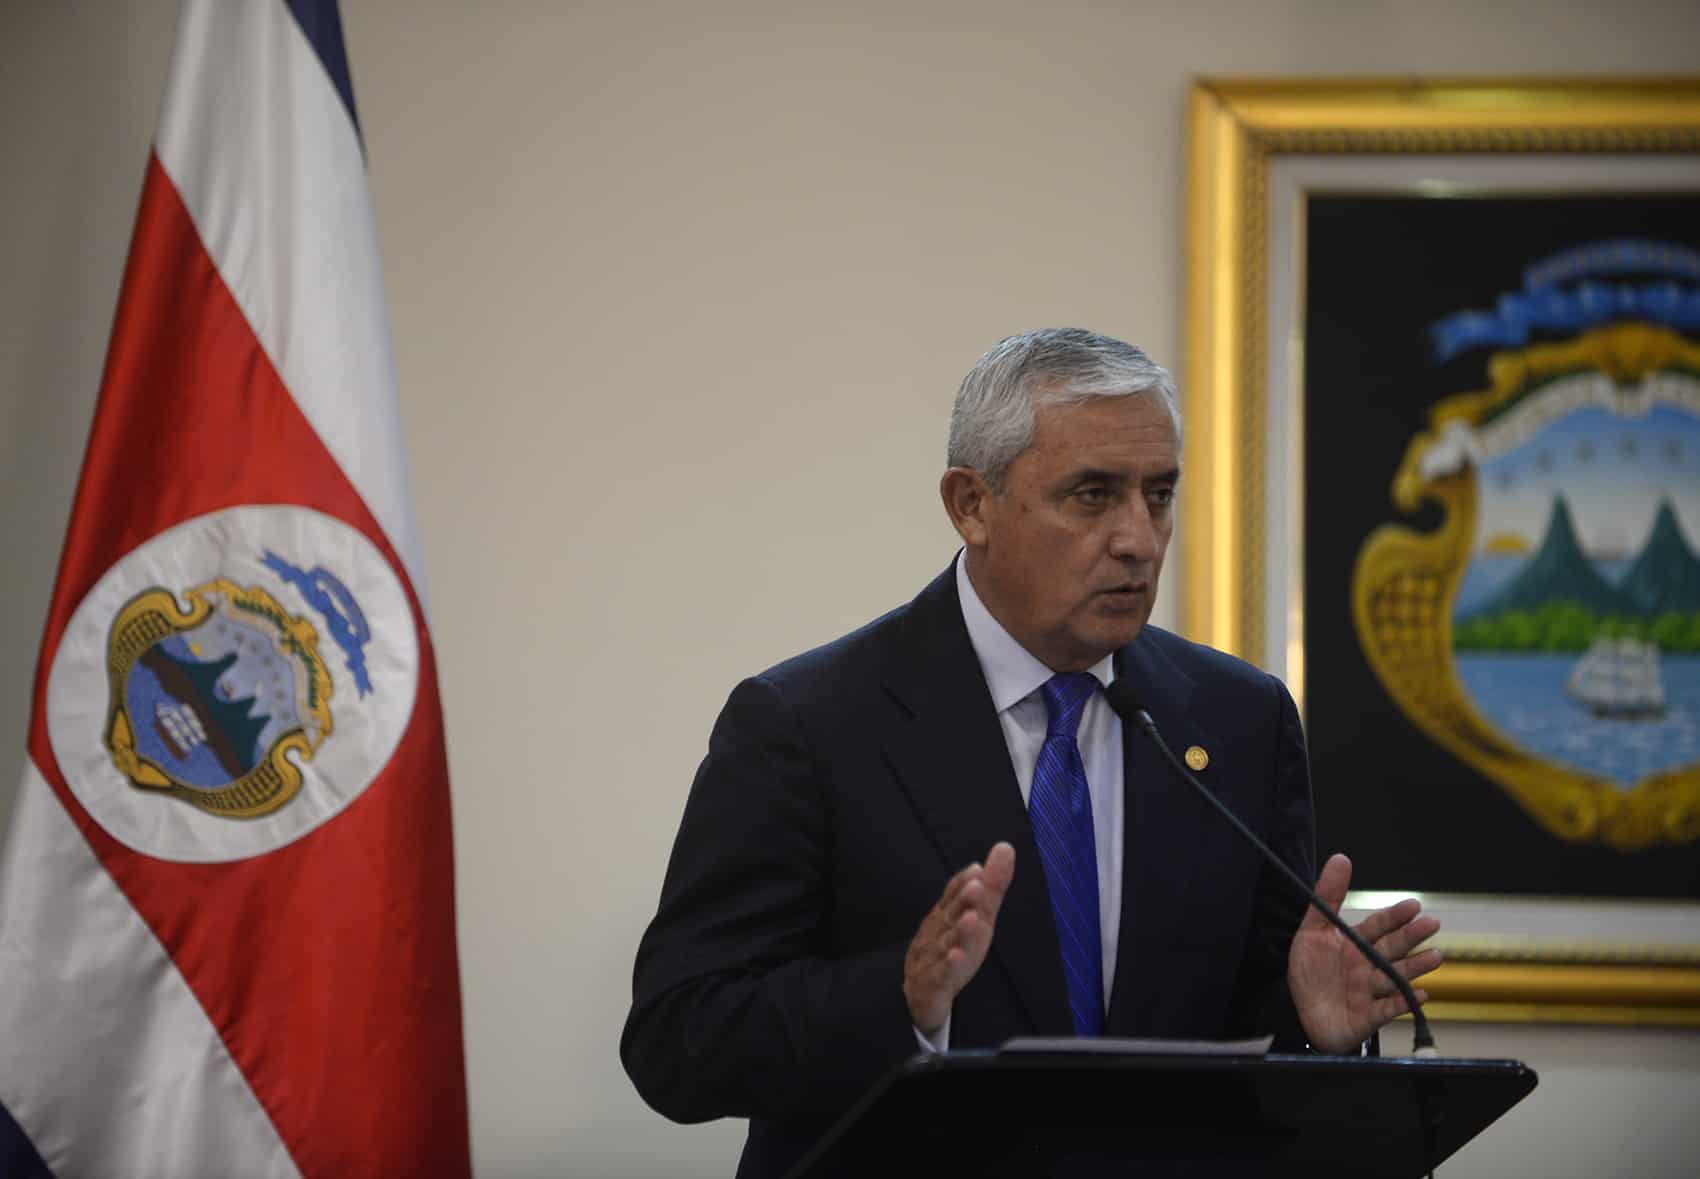 Guatemalan President Otto Pérez Molina addresses the press during his brief visit to Costa Rica on June 6, 2014.